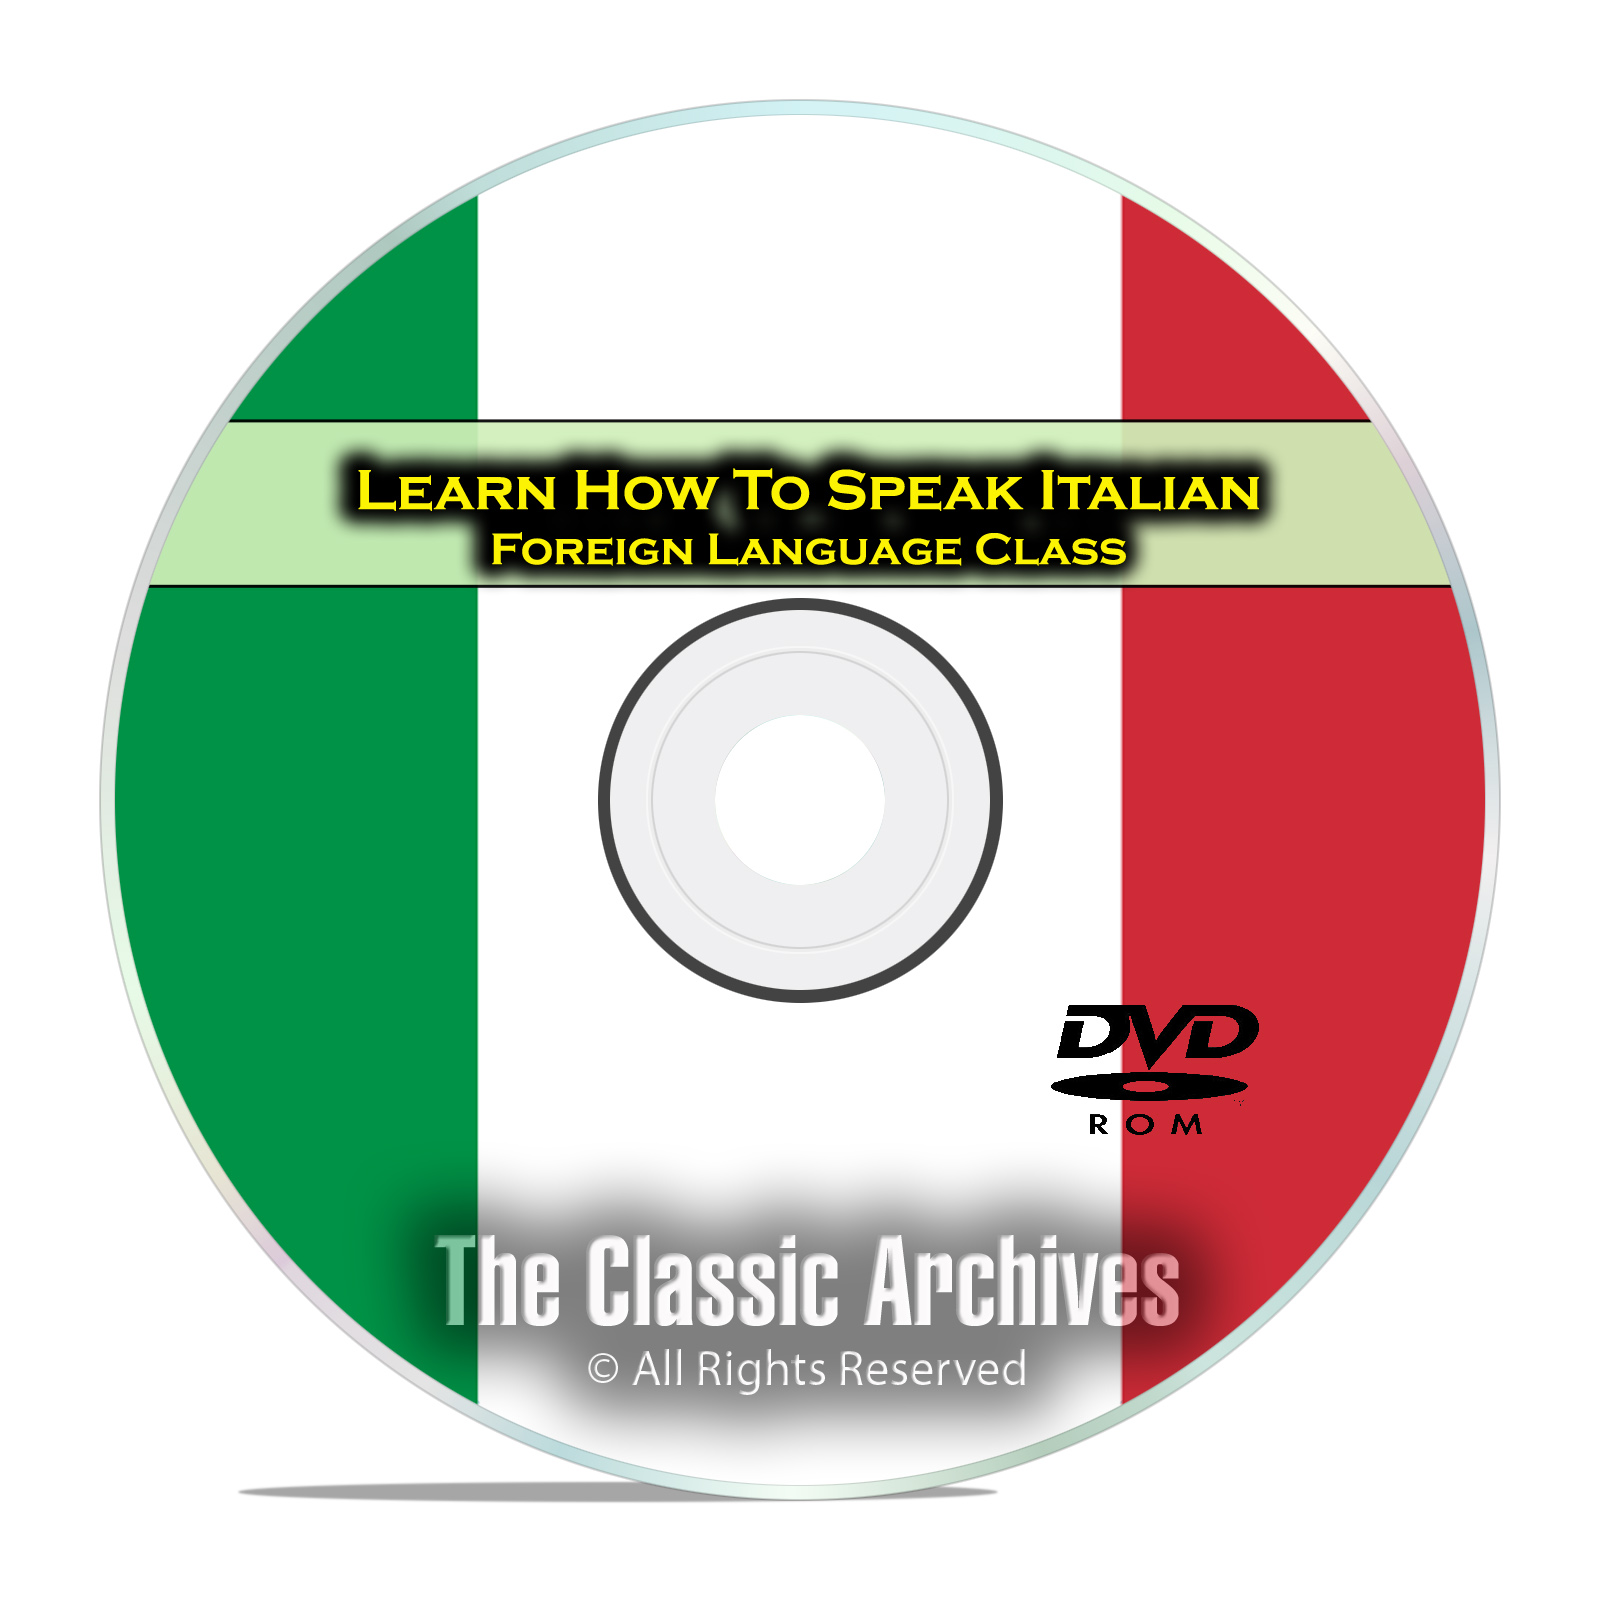 Learn How To Speak Italian, Fast Foreign Language Training Course, DVD